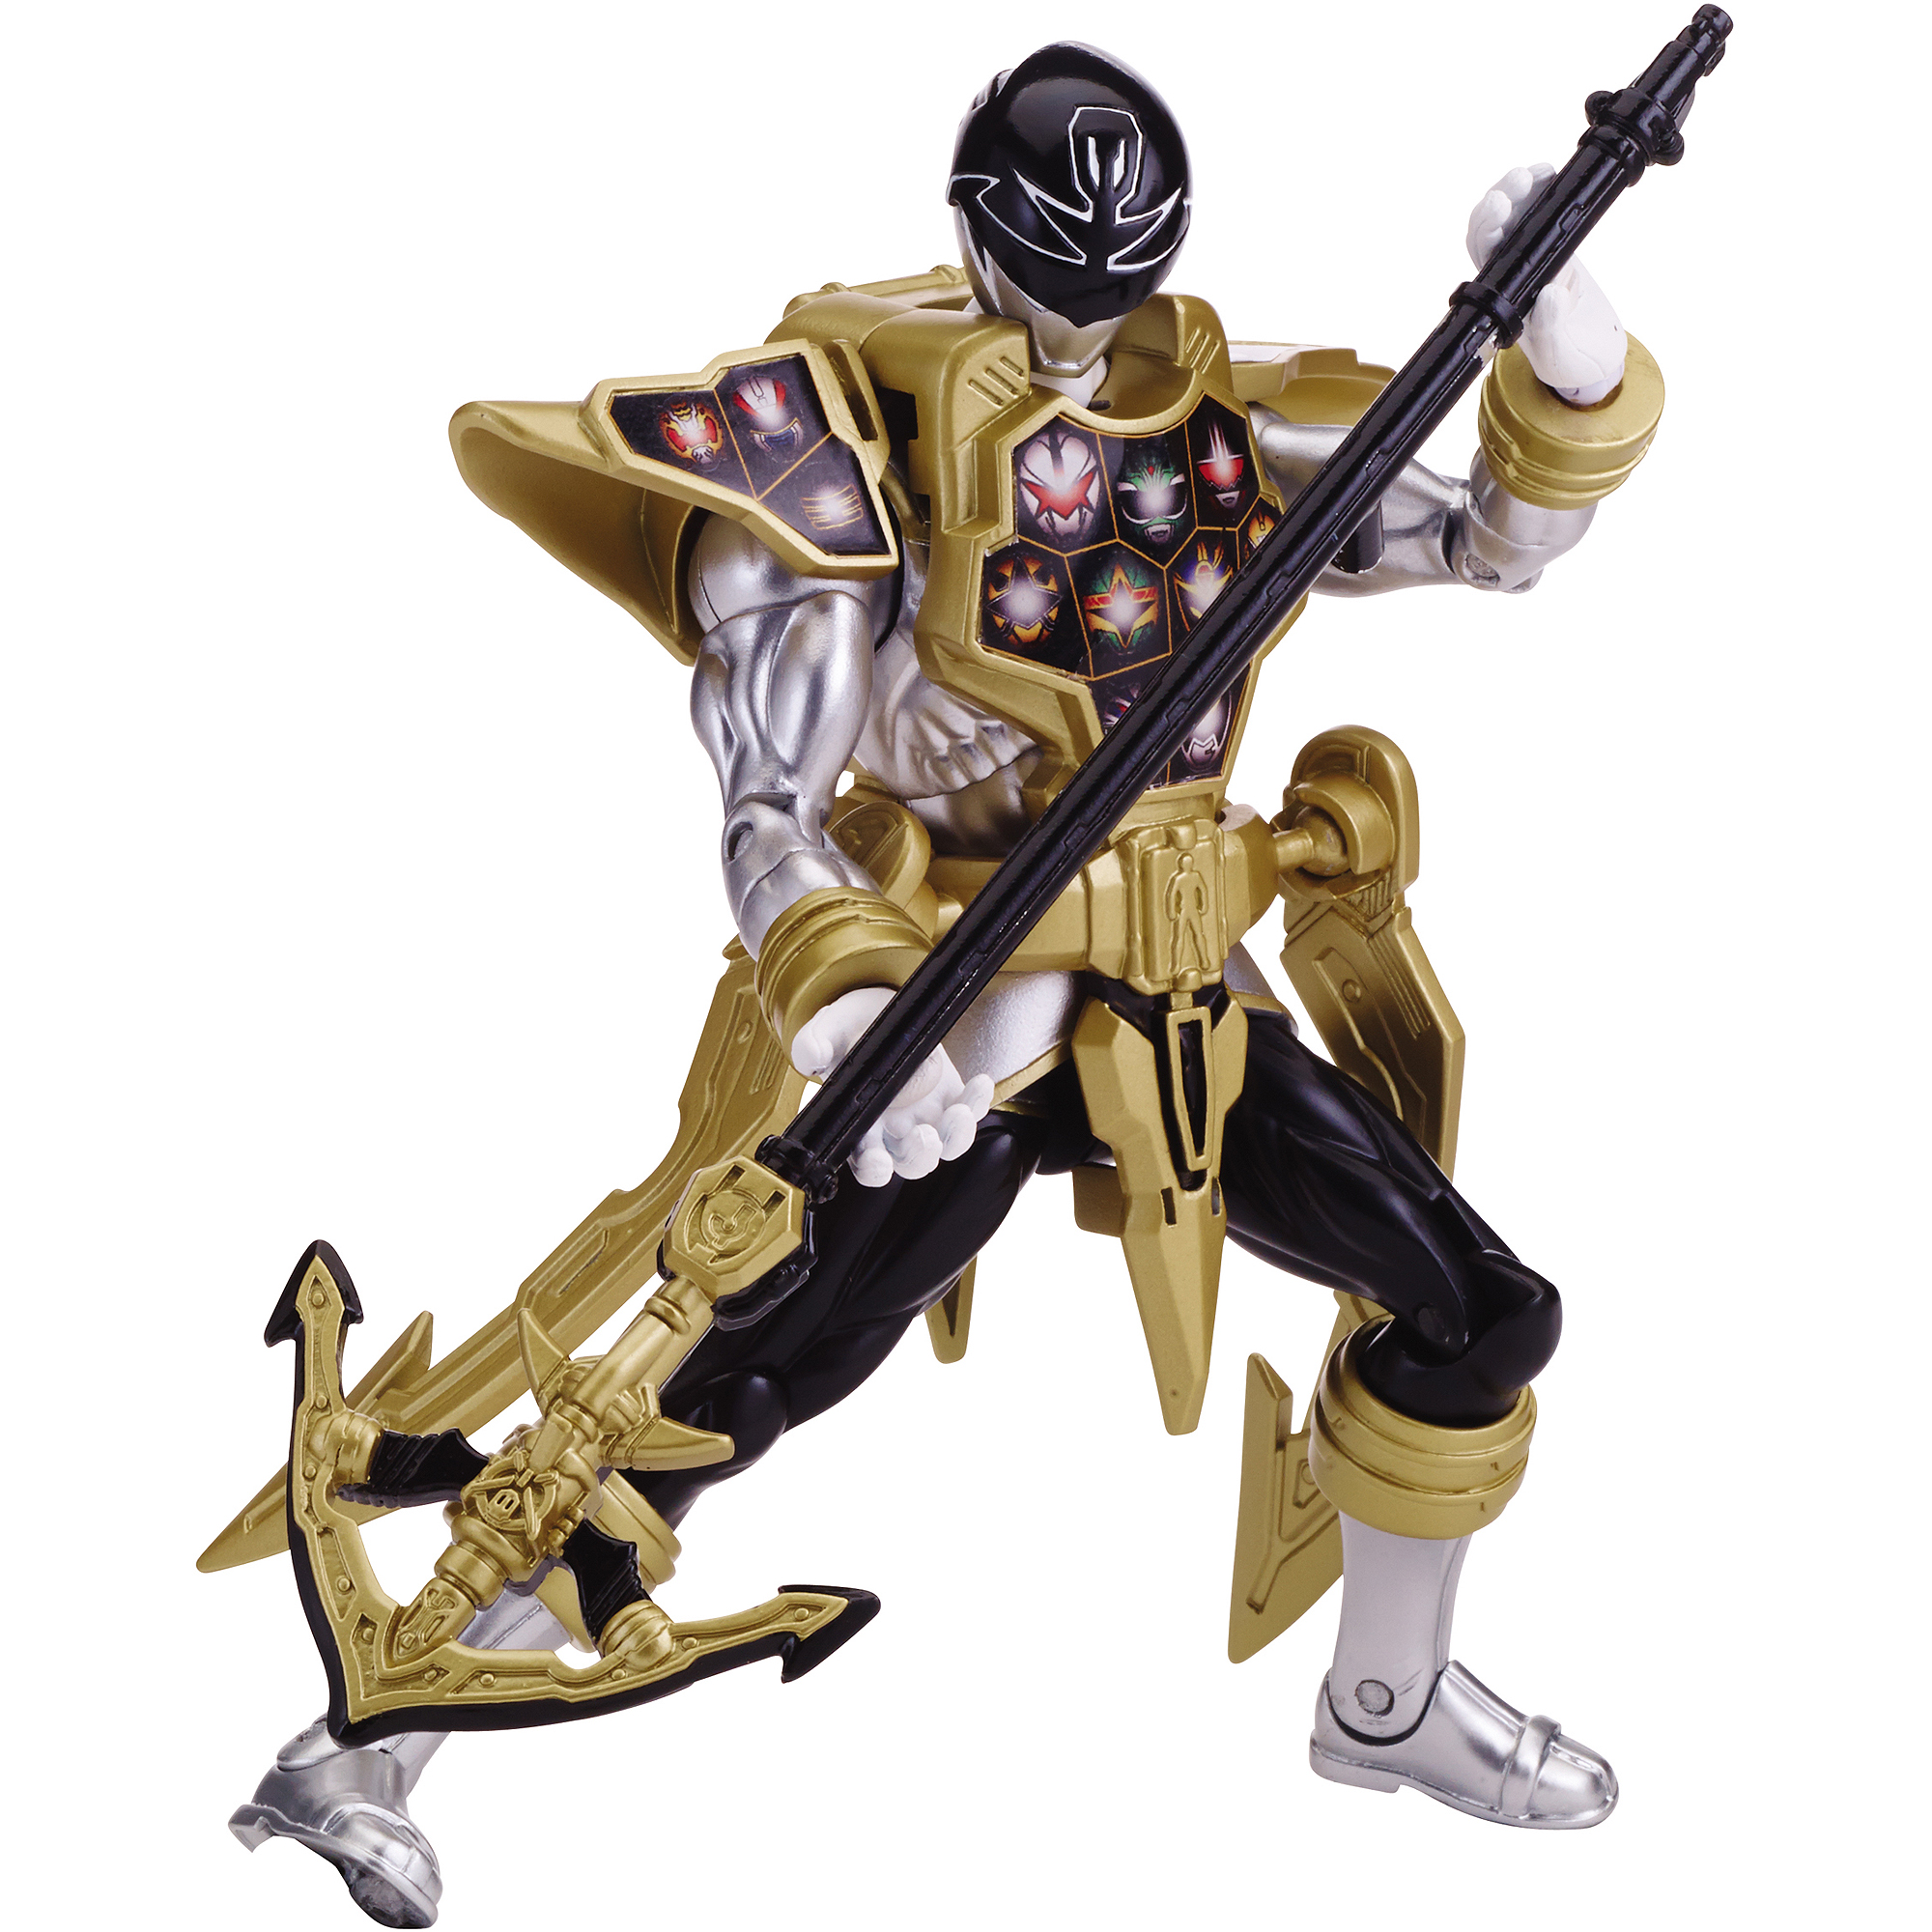 power rangers super megaforce armored super mega ranger 6 5 in red walmart com walmart com power rangers super megaforce armored super mega ranger 6 5 in red